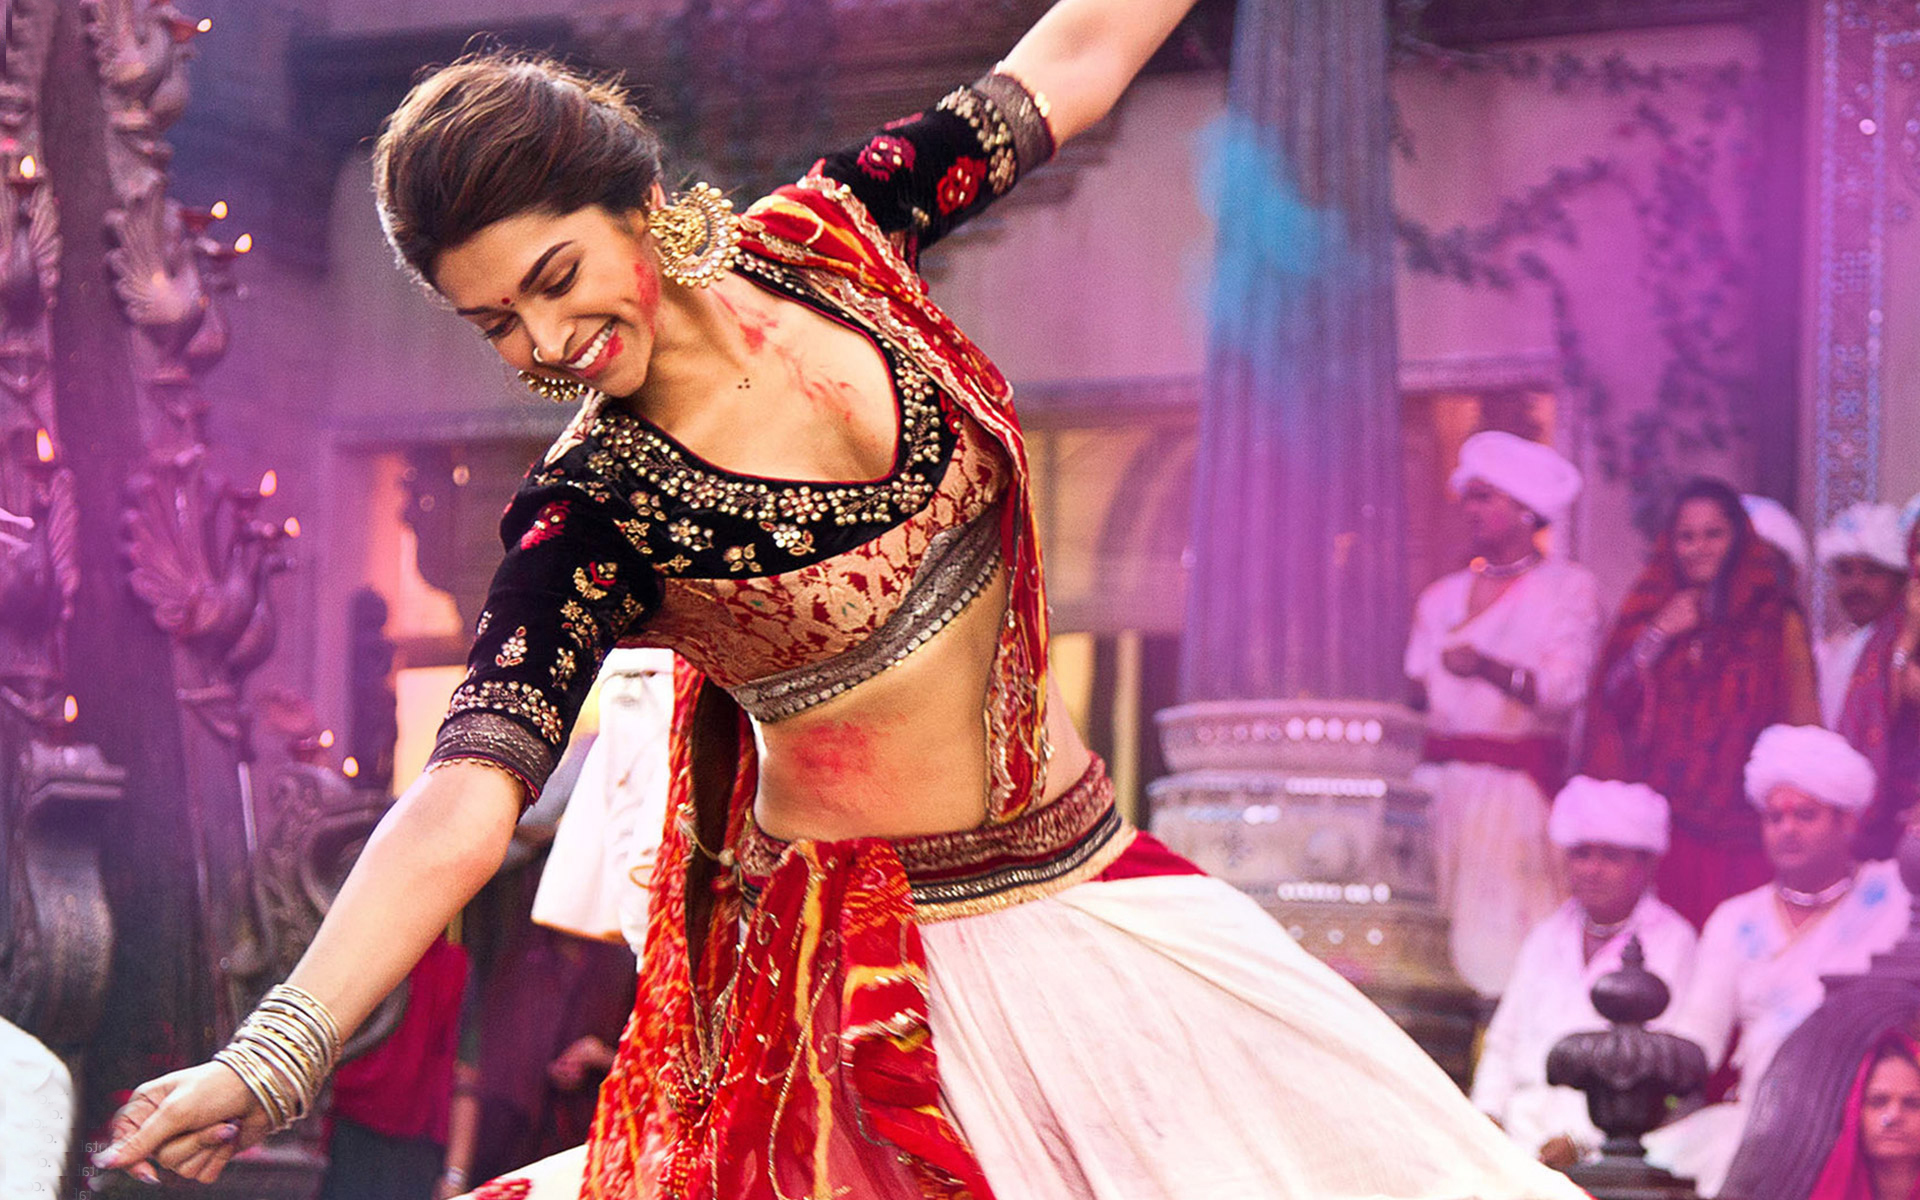 Deepika looking heavenly in  Ram-leela